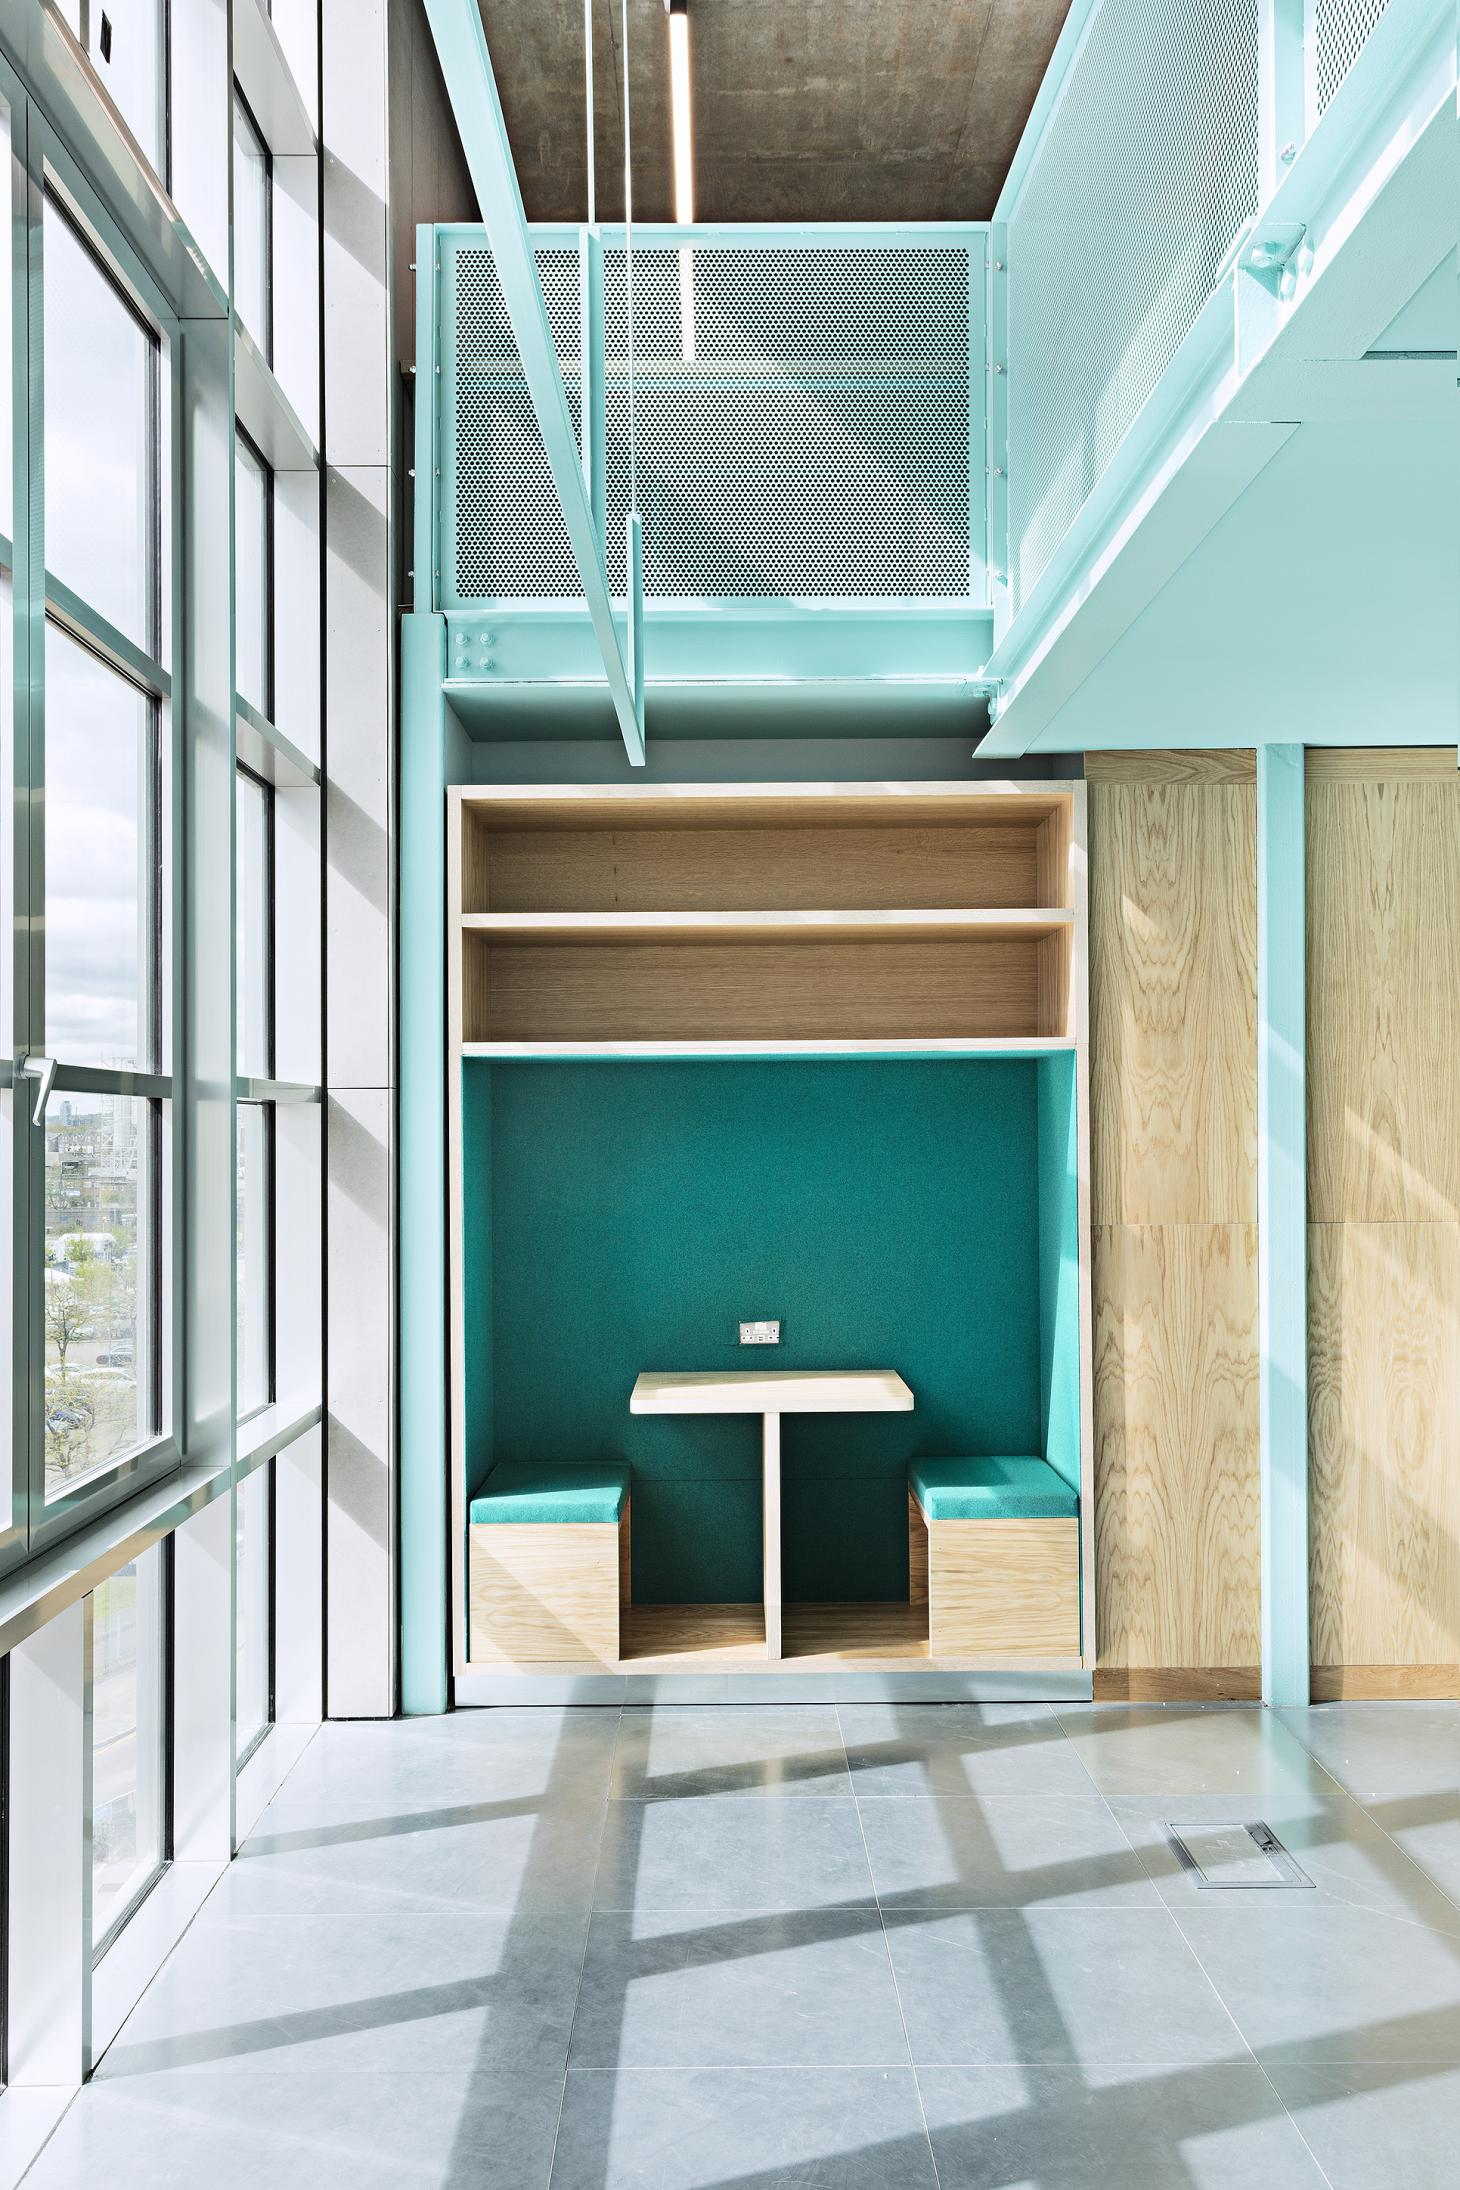 Design District launches A1, seen here using bright blue-green in its interior